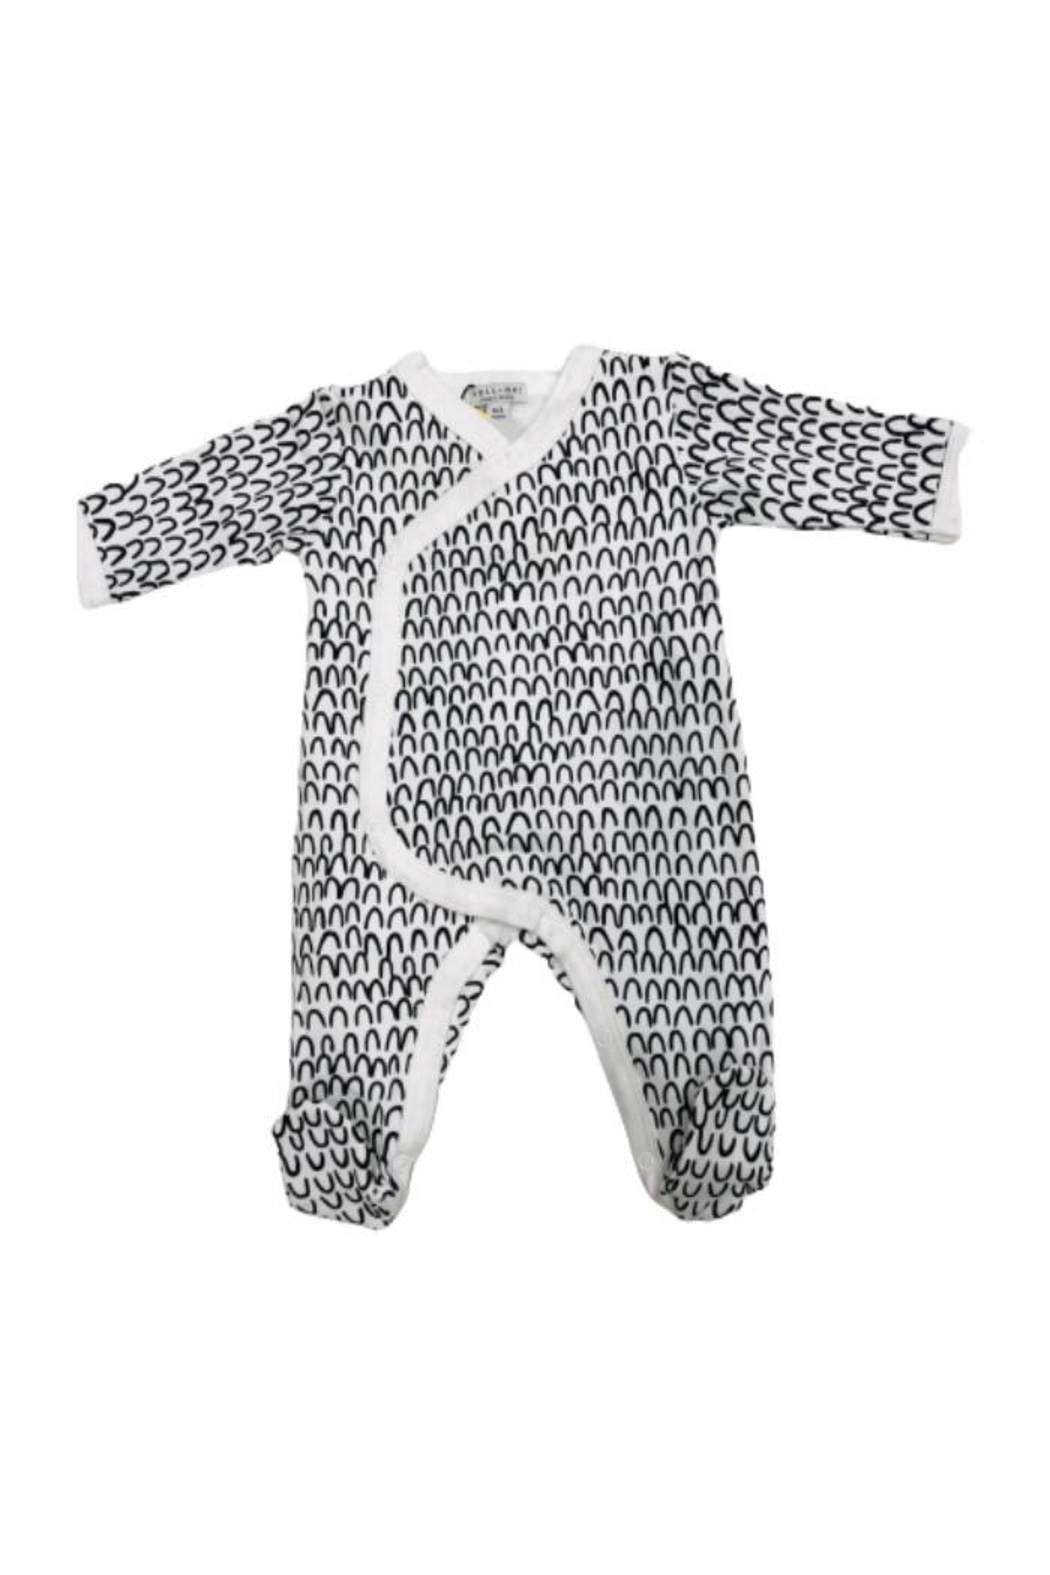 YELL-OH YELL-HO Baby Mountain Design Bodysuit for newborn Soft Comfy - Main Image